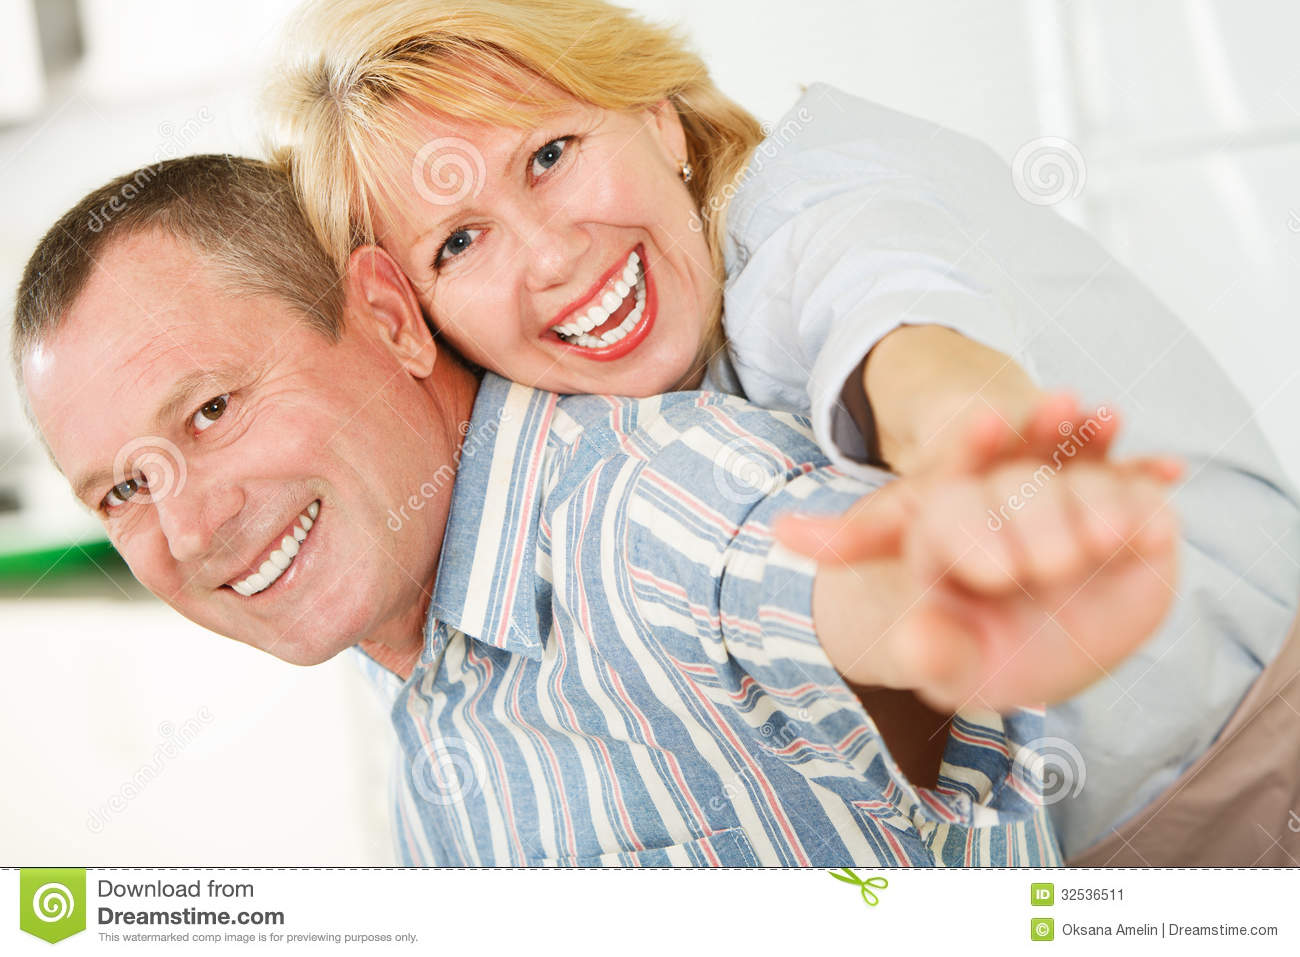 Man and woman masterbate together